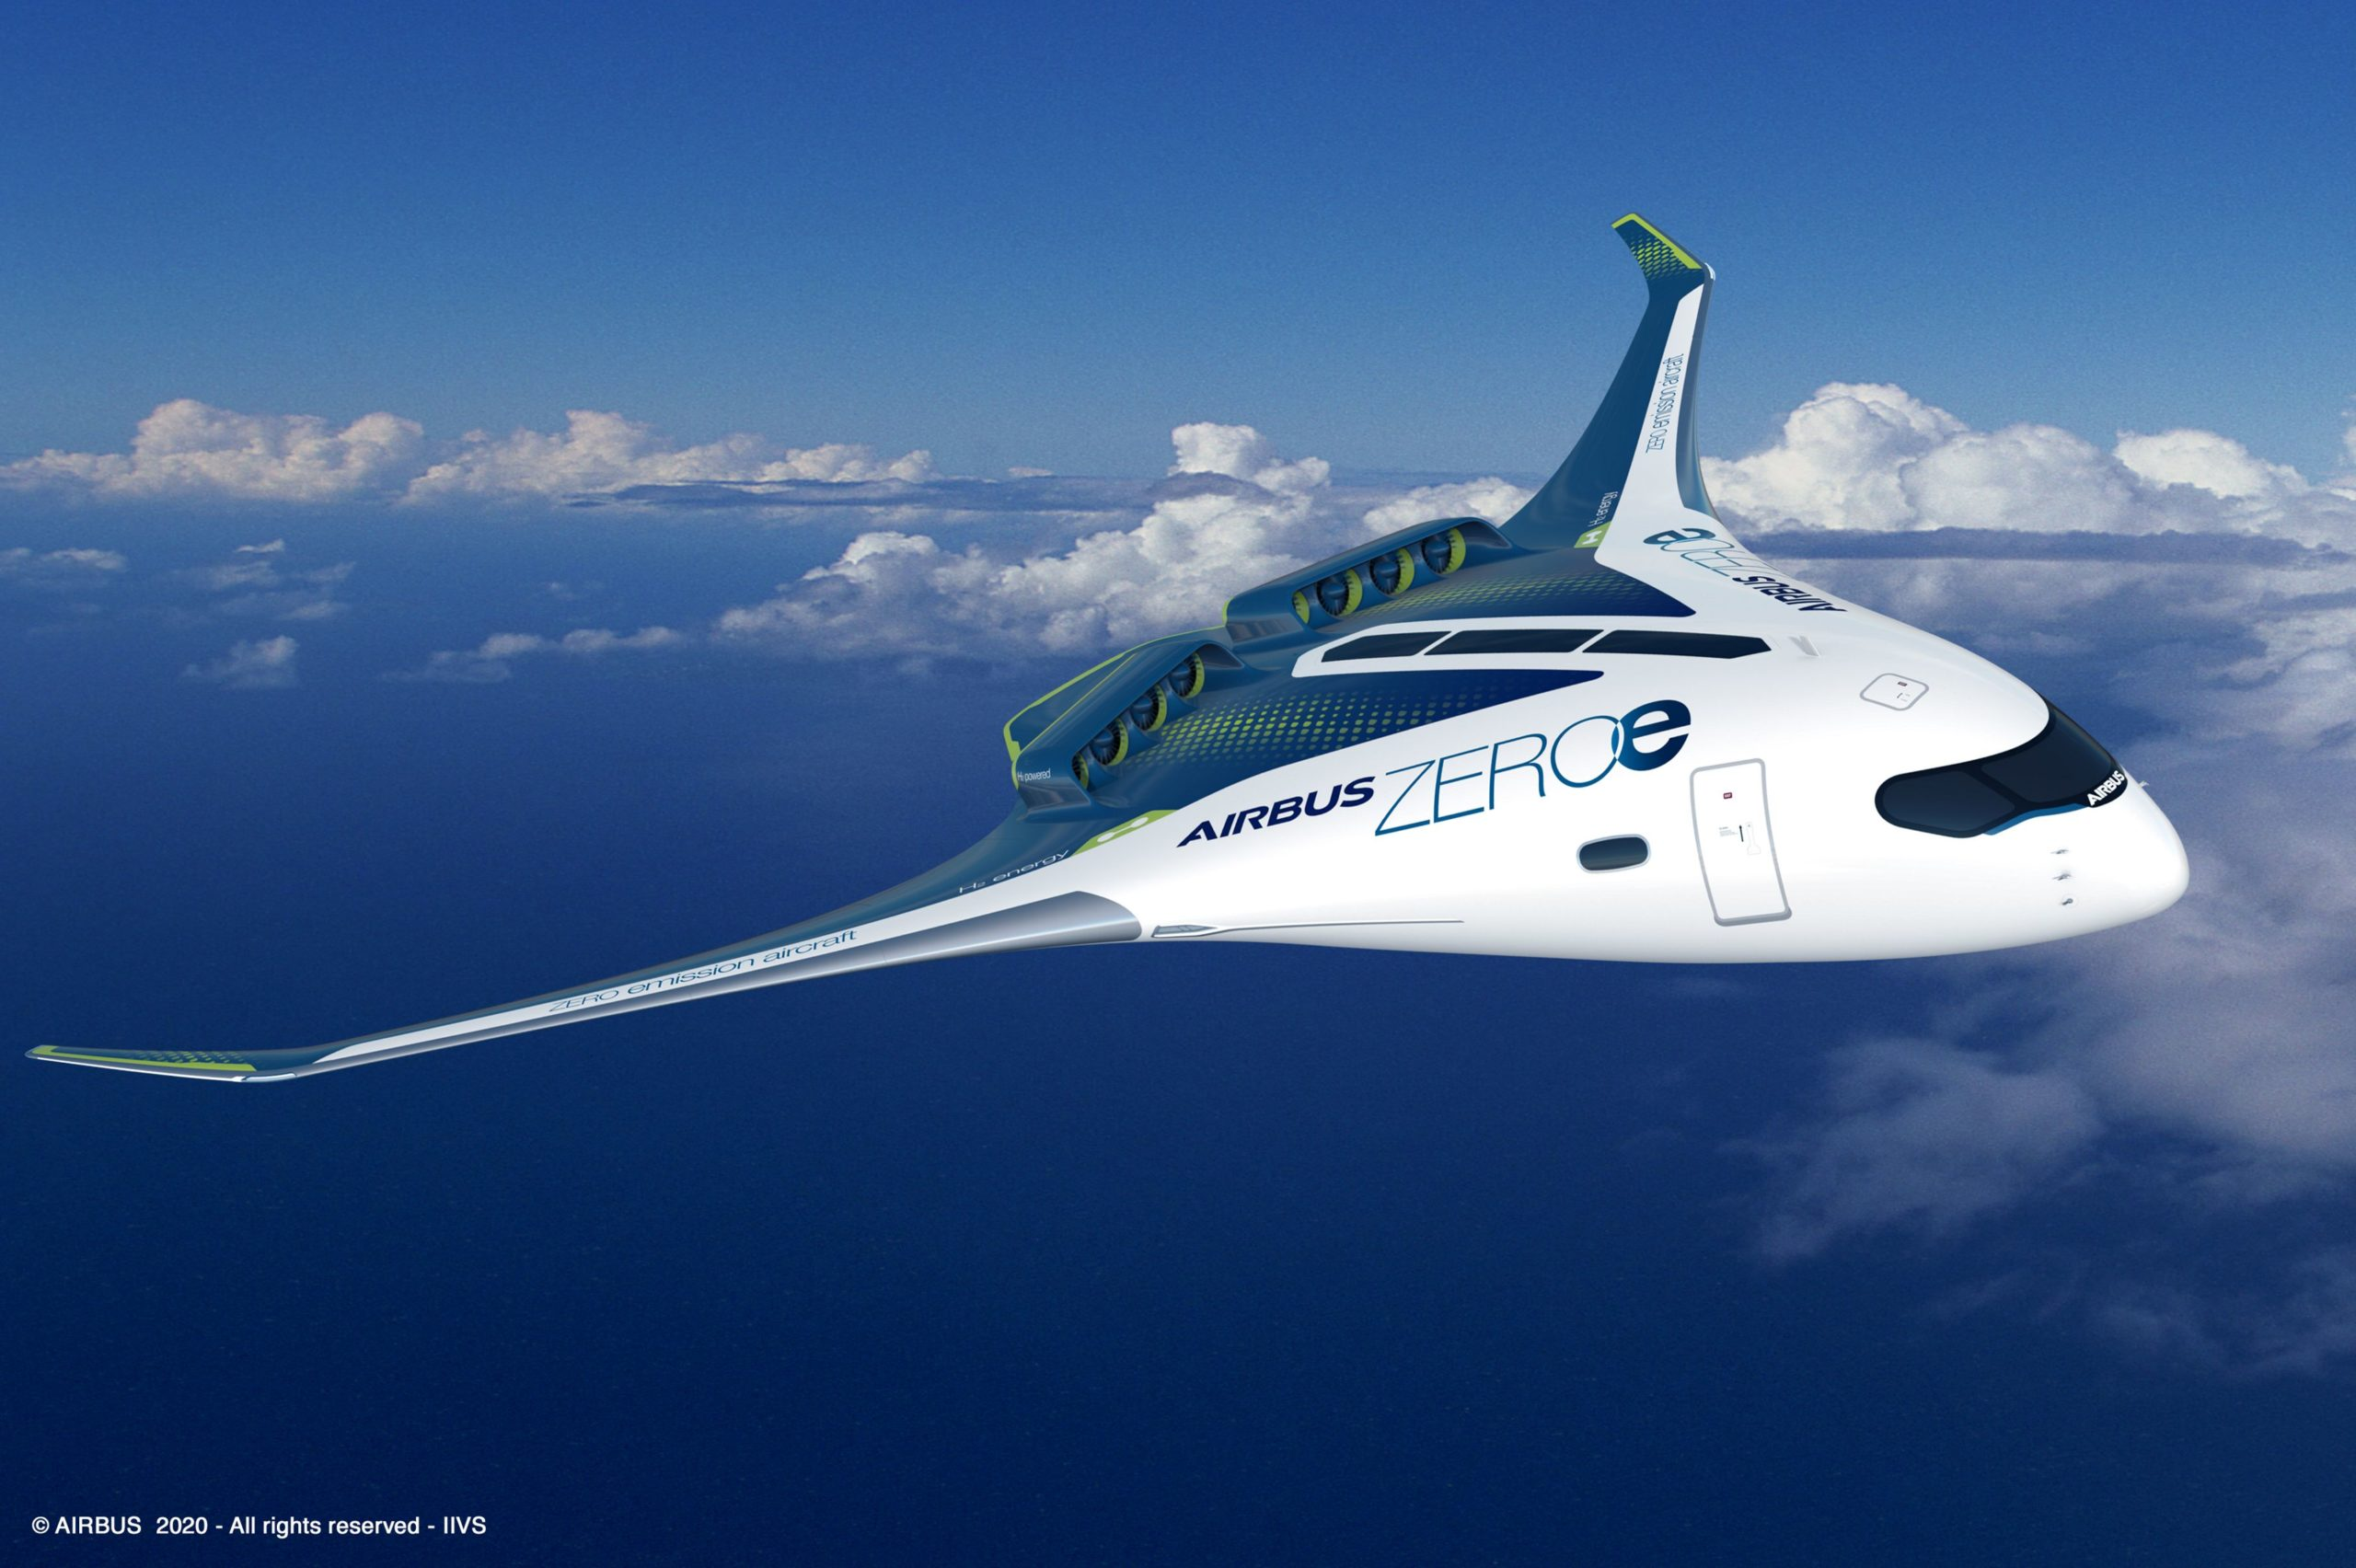 Airbus ZEROe Blended wing body powered by hydrogen